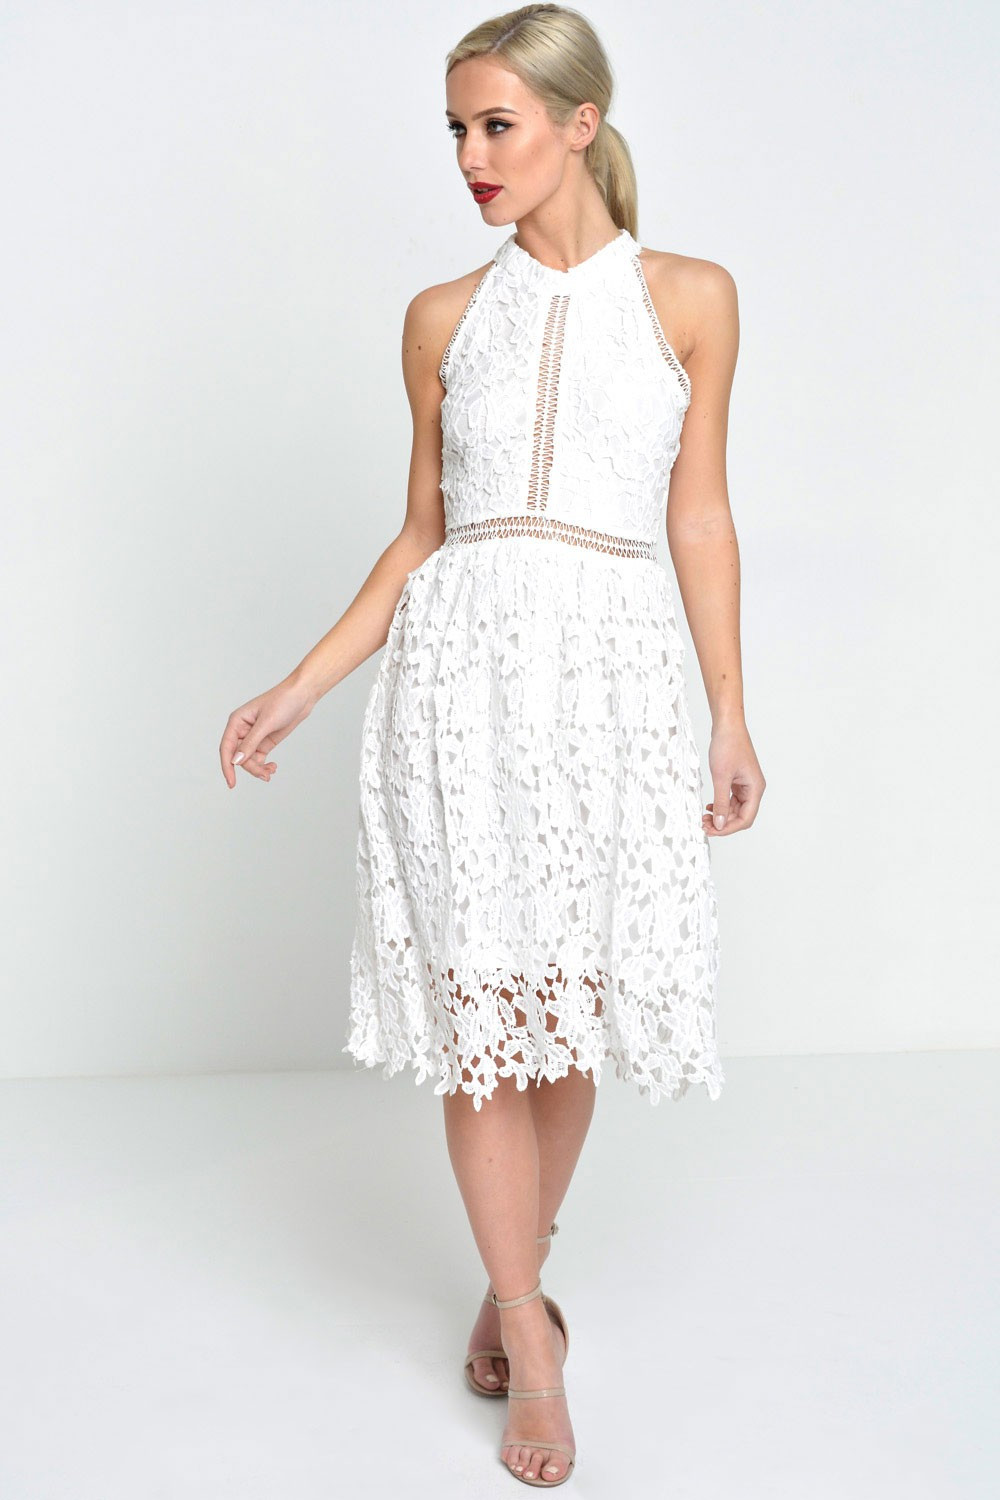 Awesome Marc Angelo Pippa Lace Crochet Halter Neck Dress In Ivory Crochet Halter Dress Of Incredible 49 Ideas Crochet Halter Dress